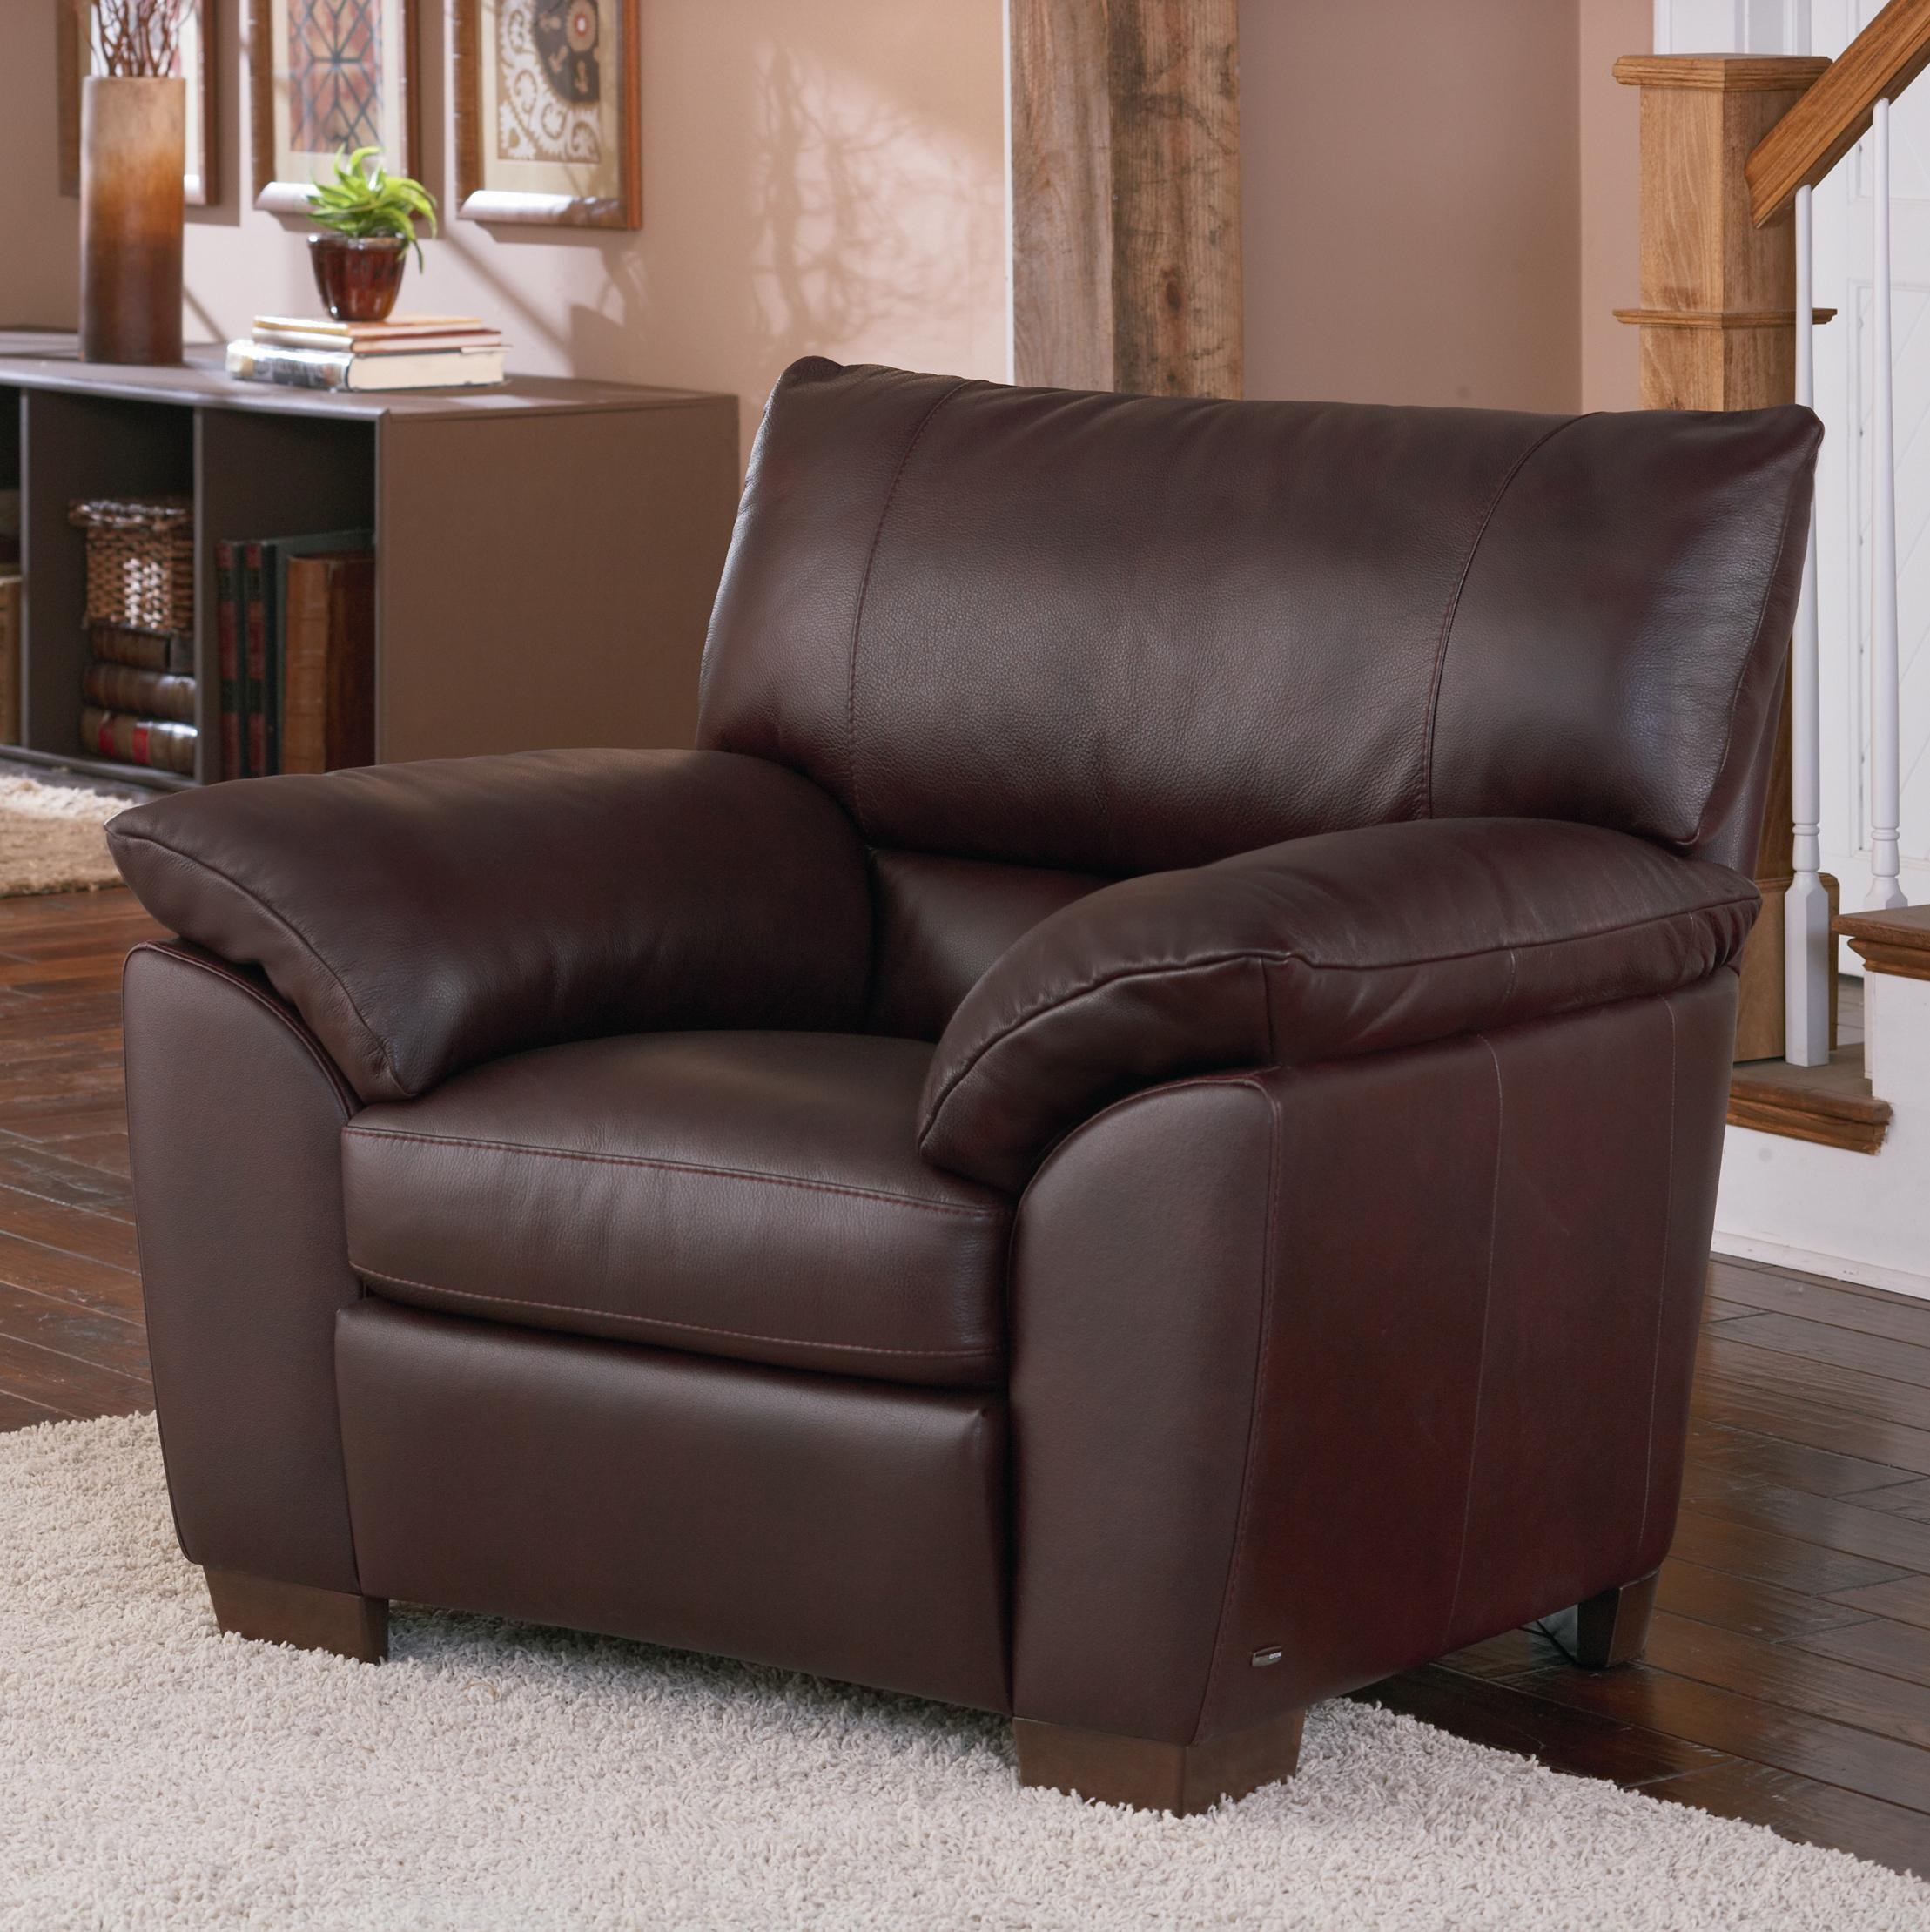 Incroyable Natuzzi Editions B632 Plush Pillow Arm Leather Chair